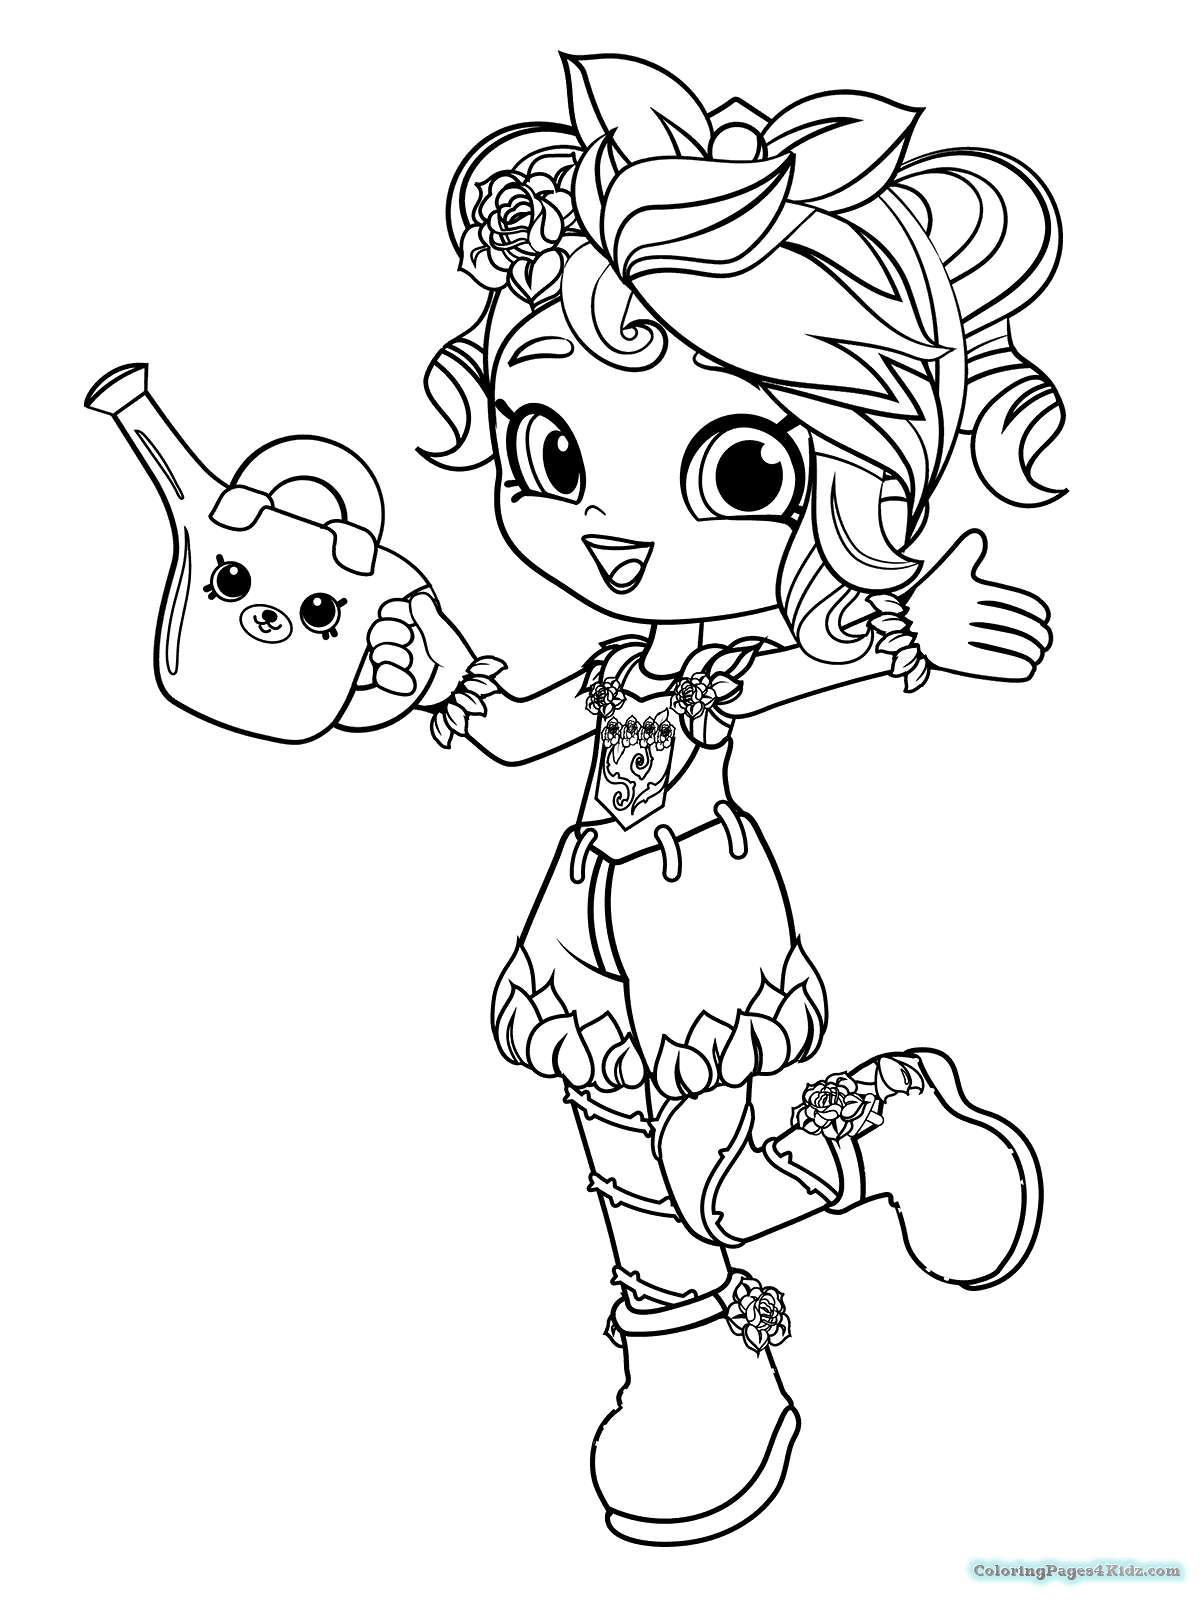 shoppies coloring pages - shopkins shoppies coloring pages 102